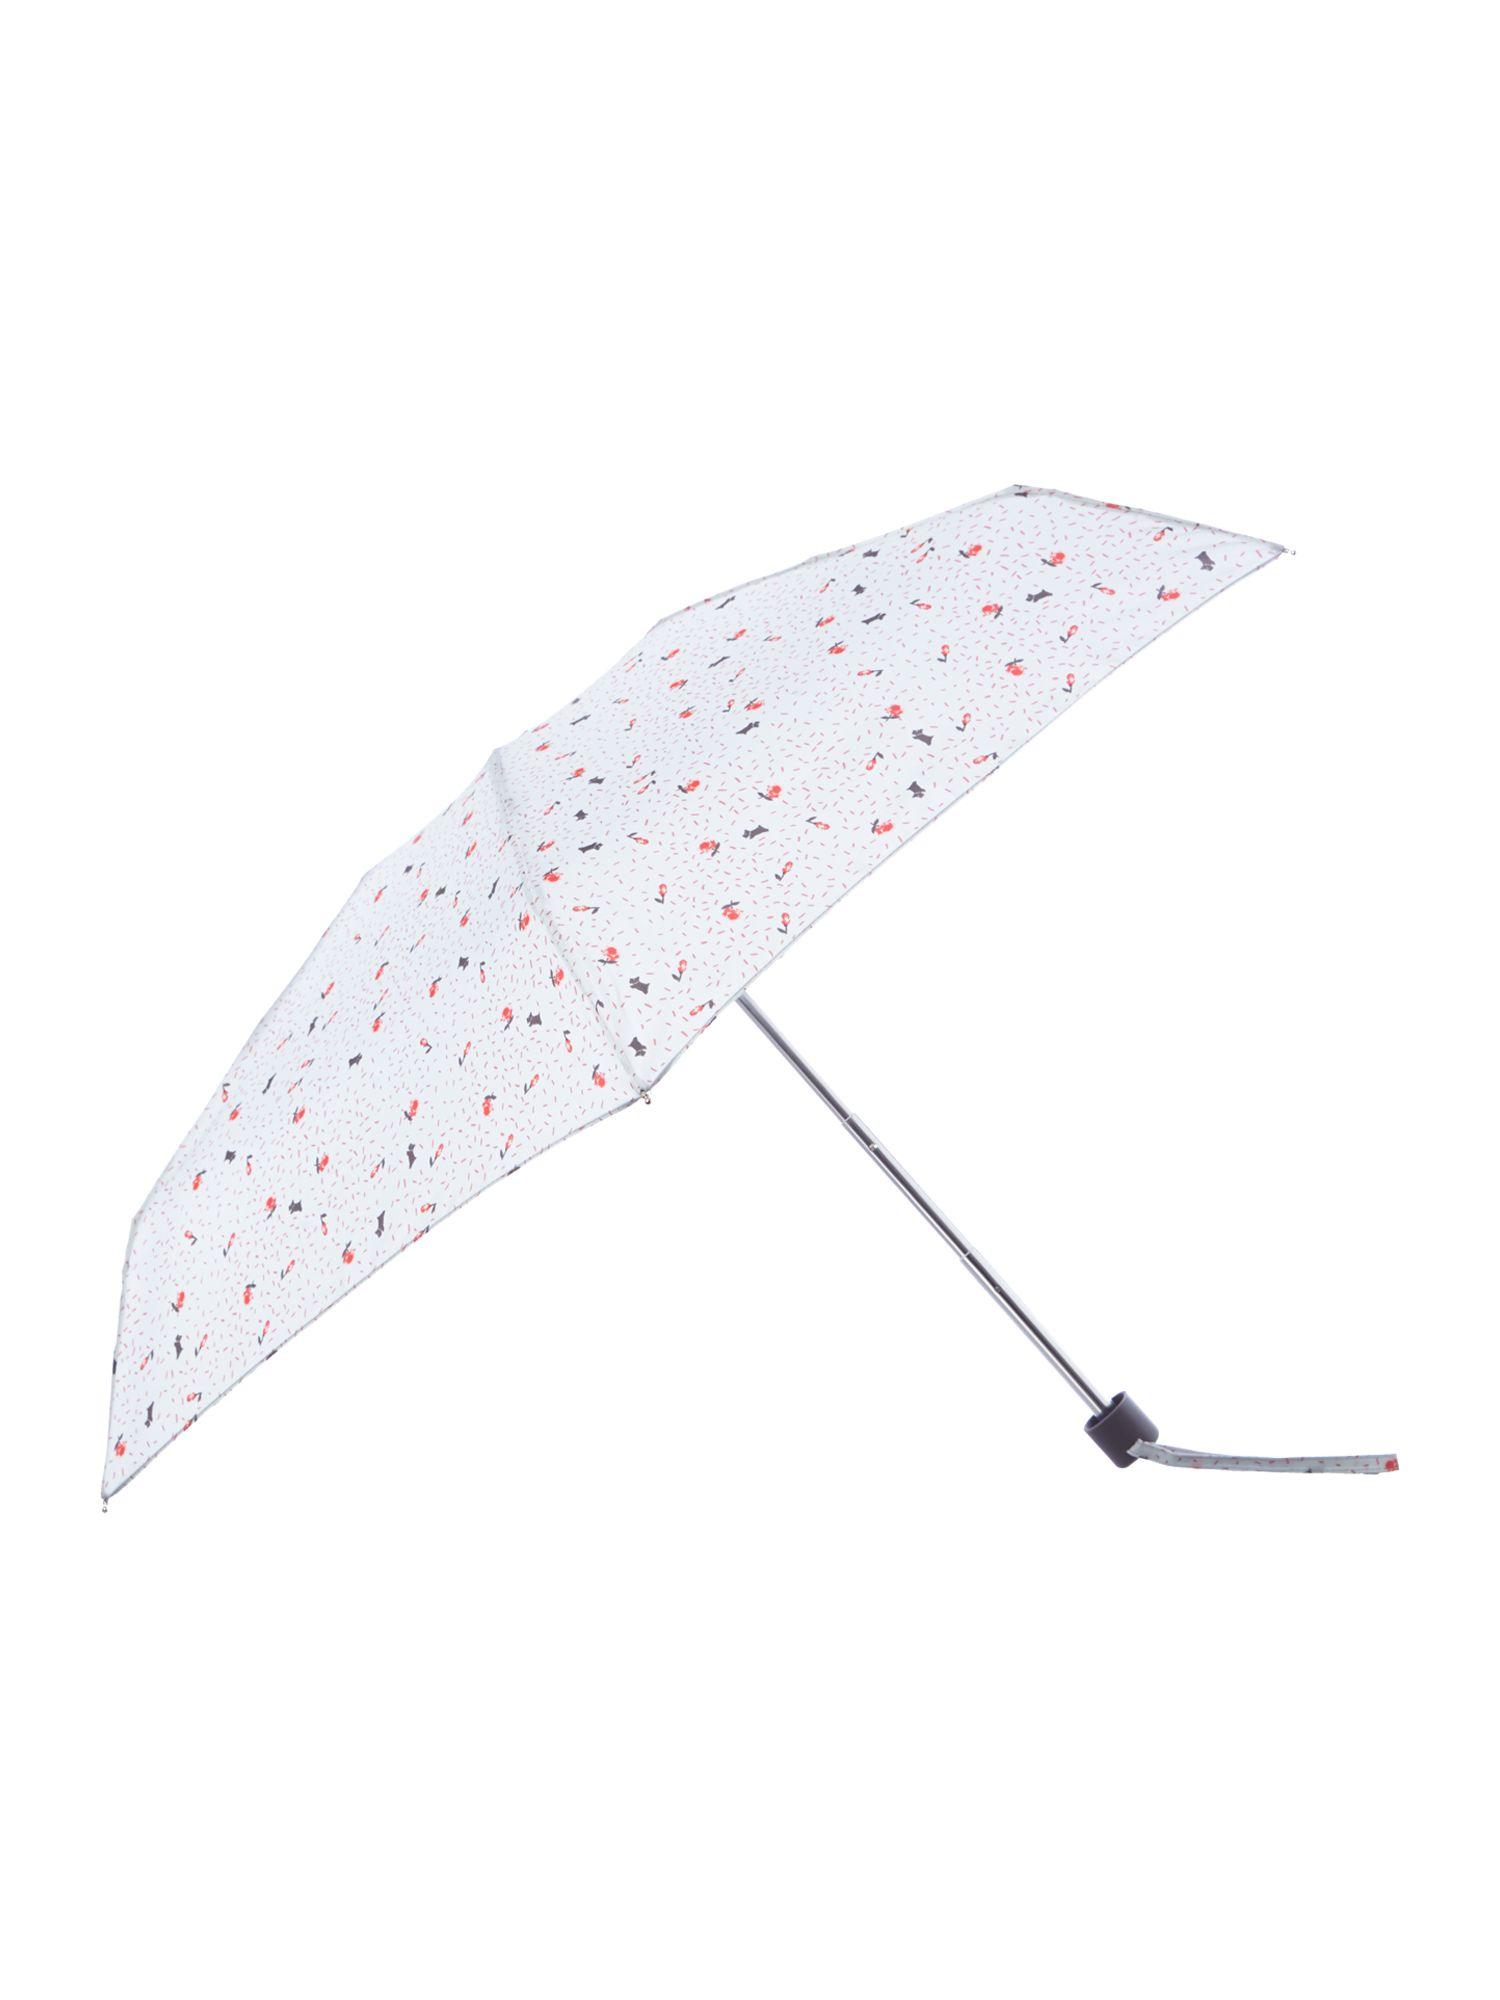 Emerson blue umbrella